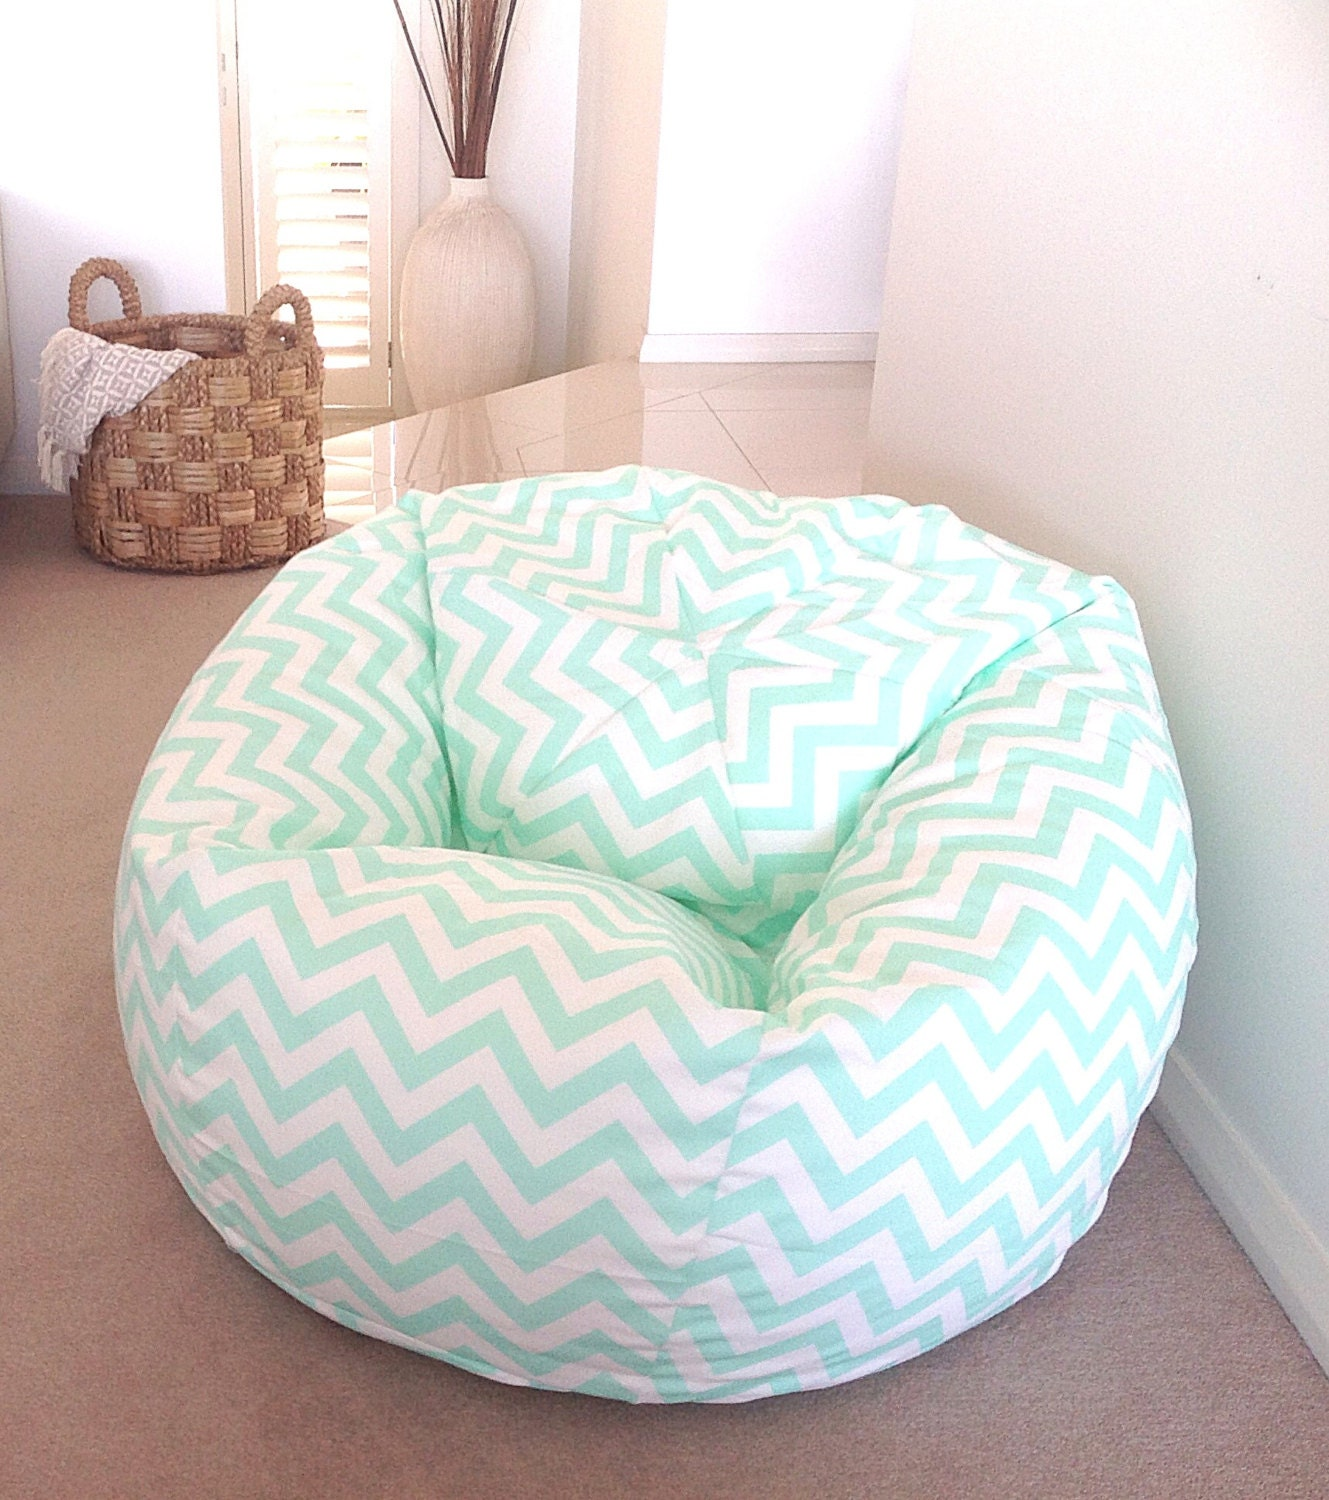 bean bag mint green zig zag adults teenagers kids chevron beanbag cover boys girls bluepink wisteria mint green pastel colours - Childrens Bean Bag Chairs